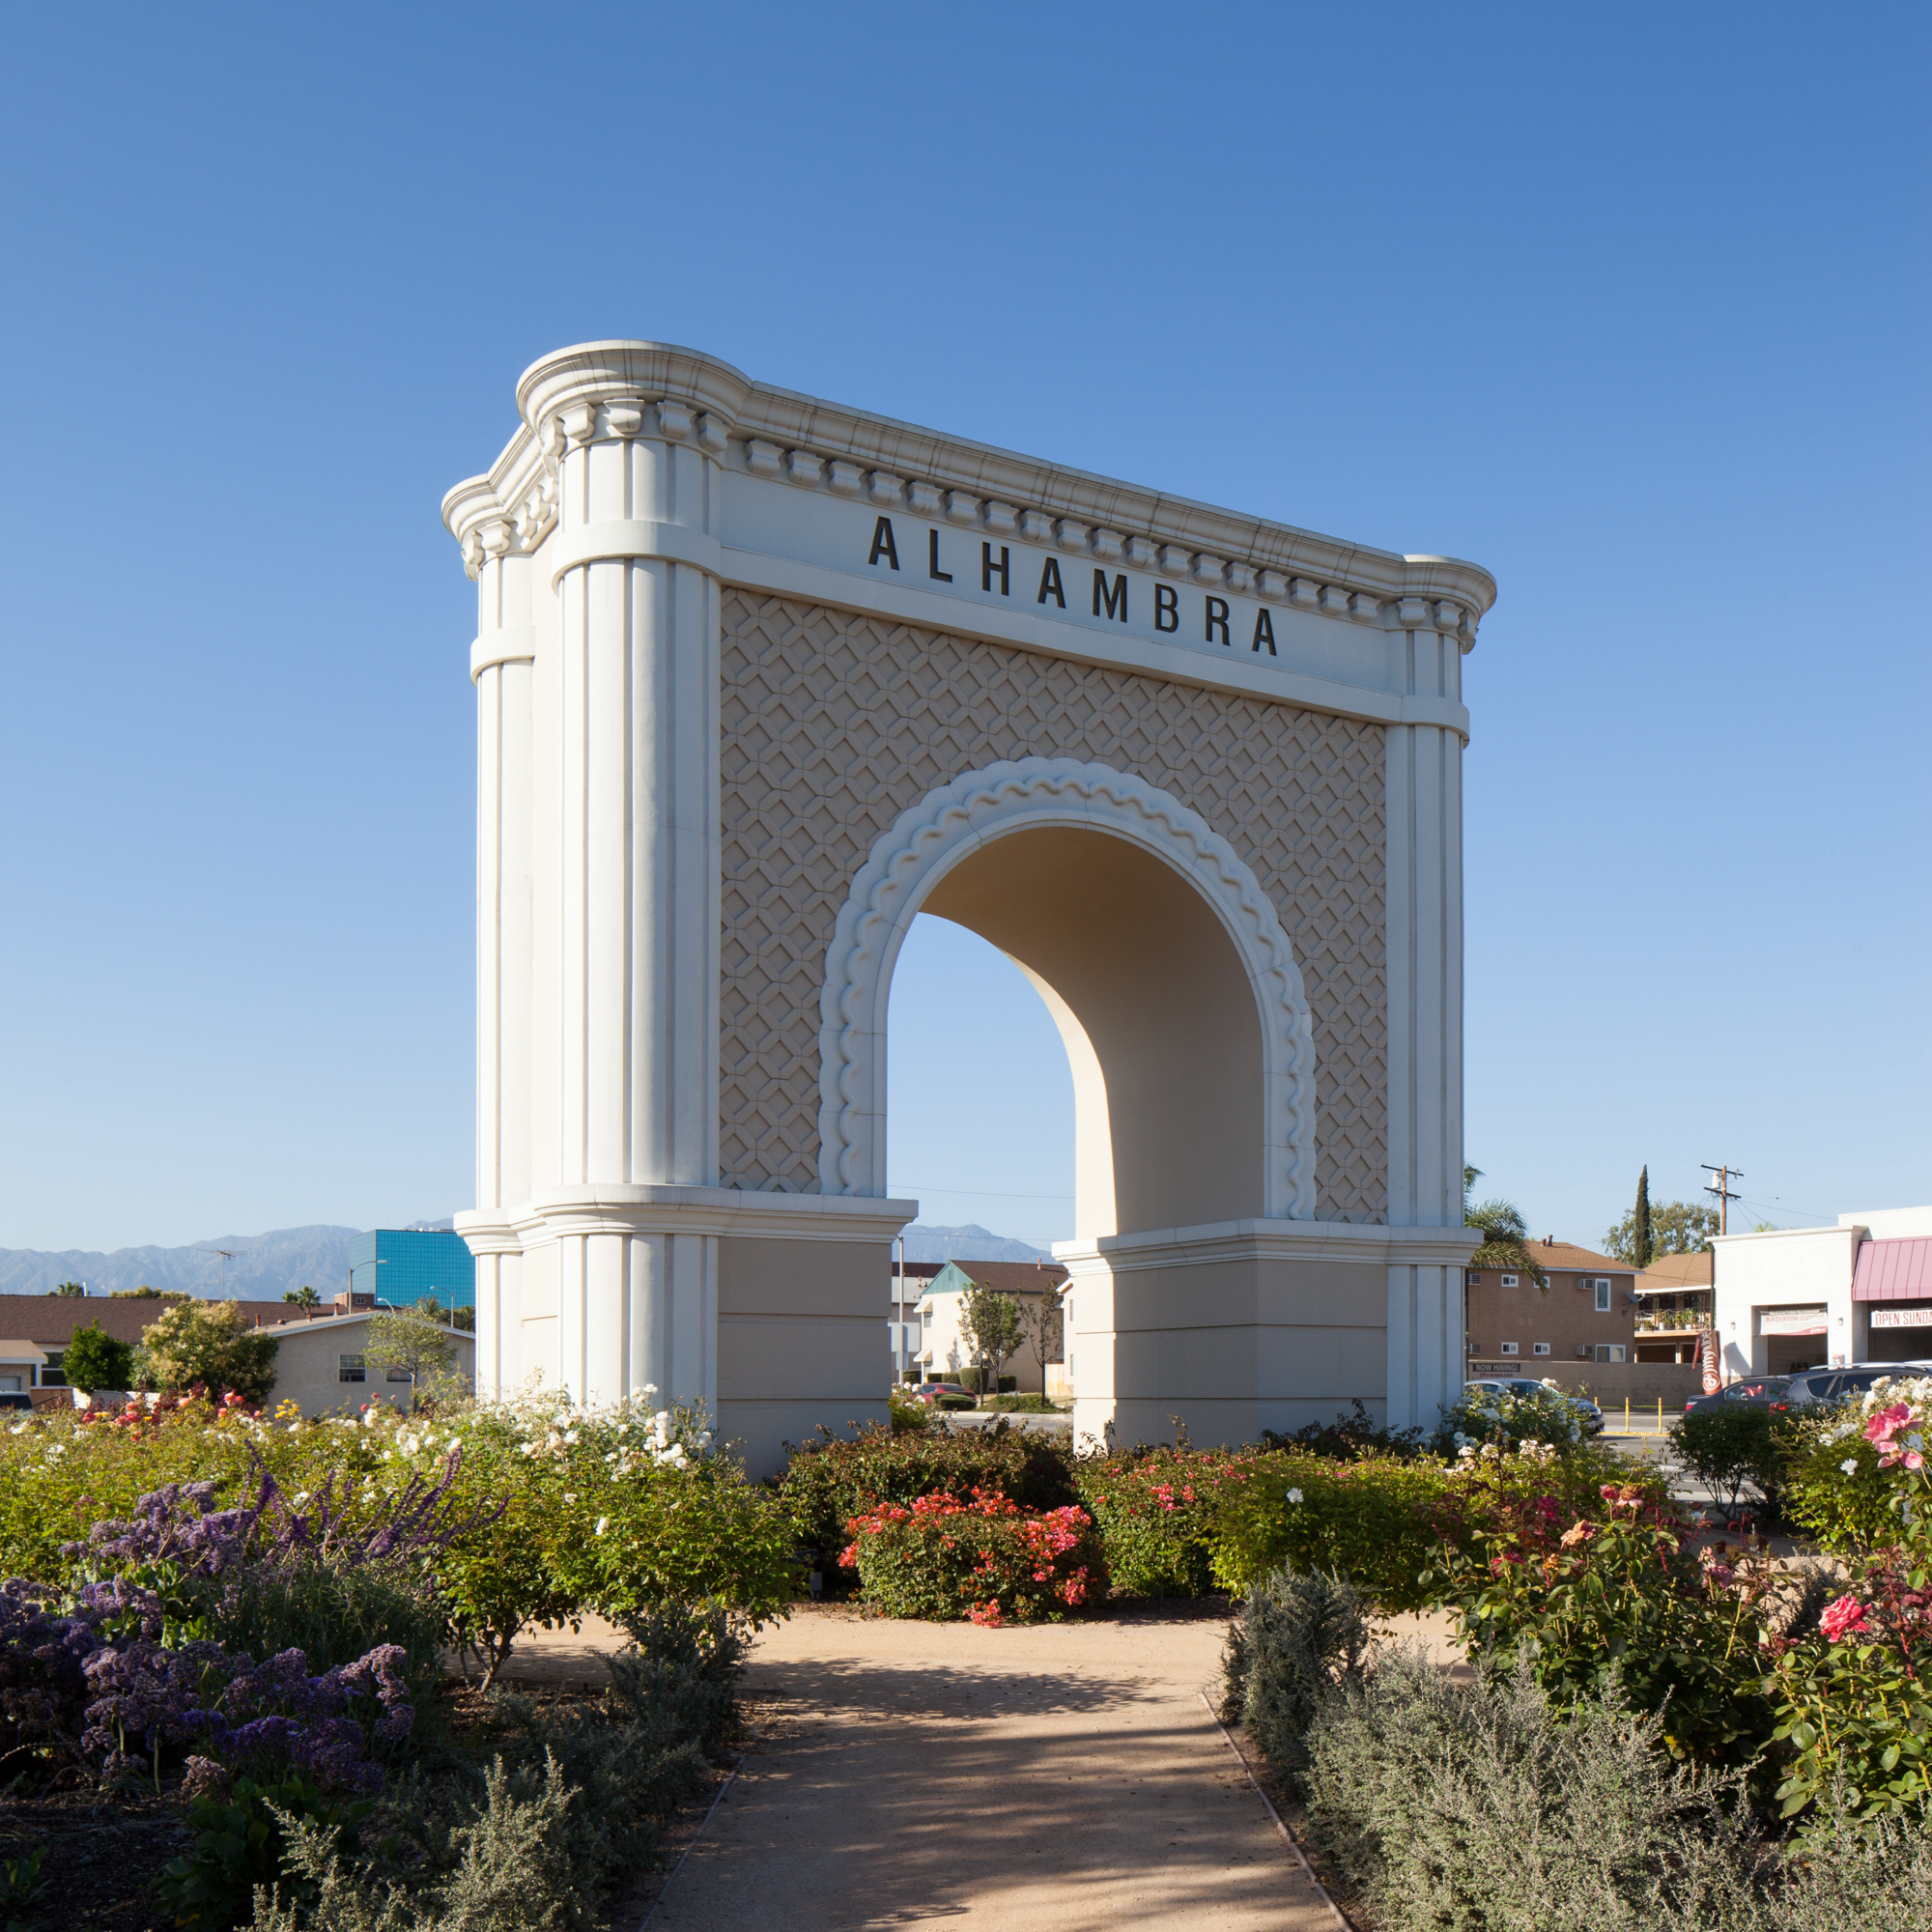 Photo of Alhambra Gateway Arch